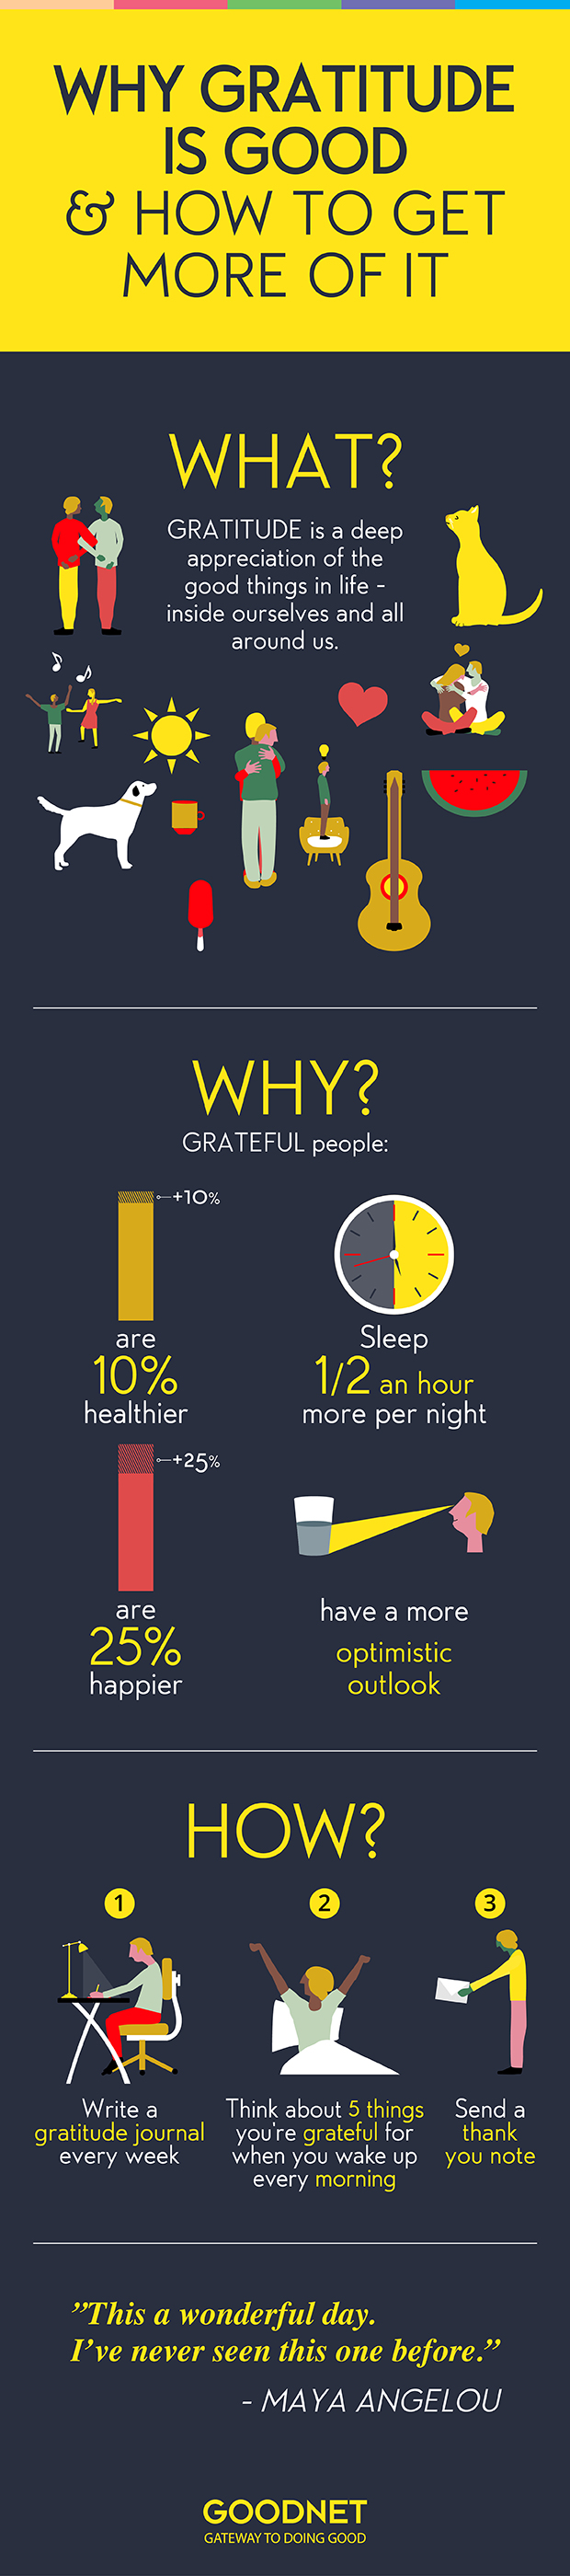 Why Gratitude is Good and How to Get More of it WHAT